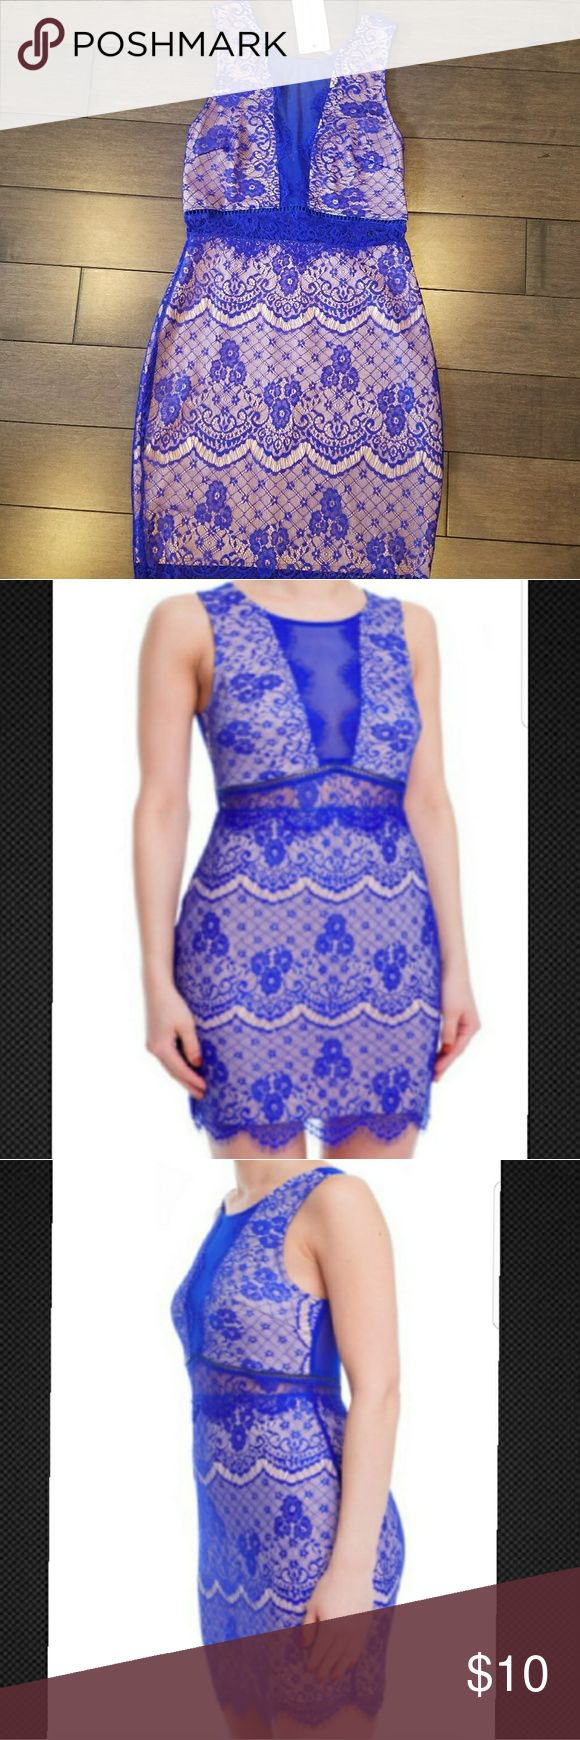 """SMALL Lush Royal Blue Lace/Nude Cocktail Dress Size Small Only! Royal Blue Lace with nude underlayment. Peek-a-boo lace at waist shows a hint of skin. Mesh """"Illusion Plunging V-neck"""". Scalloped lace bottom. Back Zipper. Nylon. 32 inches long.   Bundle and save $! We offer private discounts! Ships from NY ***Please note this dress runs small! Please refer to size chart to determine size!!*** Lush Dresses Mini"""